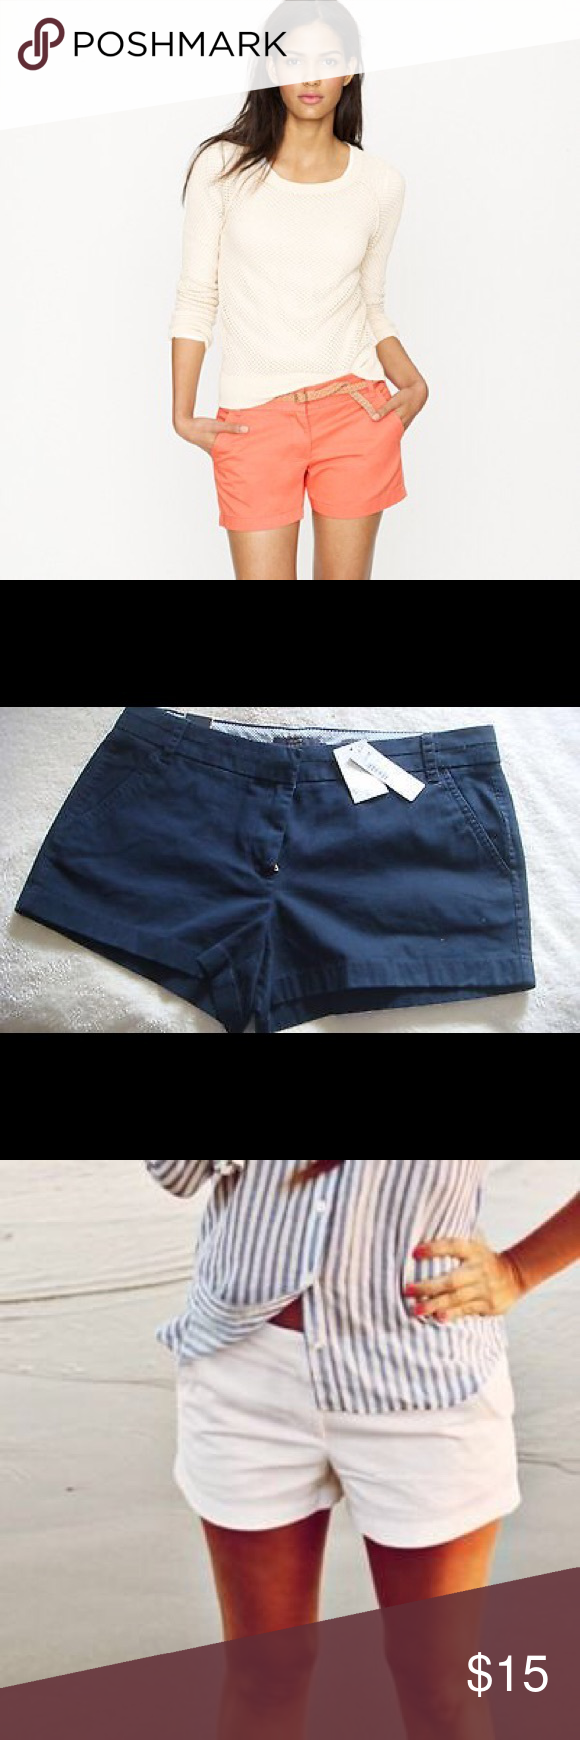 J. Crew Shorts Never Worn J. Crew 3'' Chino Shorts. Several colors available including: pink, flamingo, tan, navy blue, white, coral, maroon, and more! J. Crew Shorts